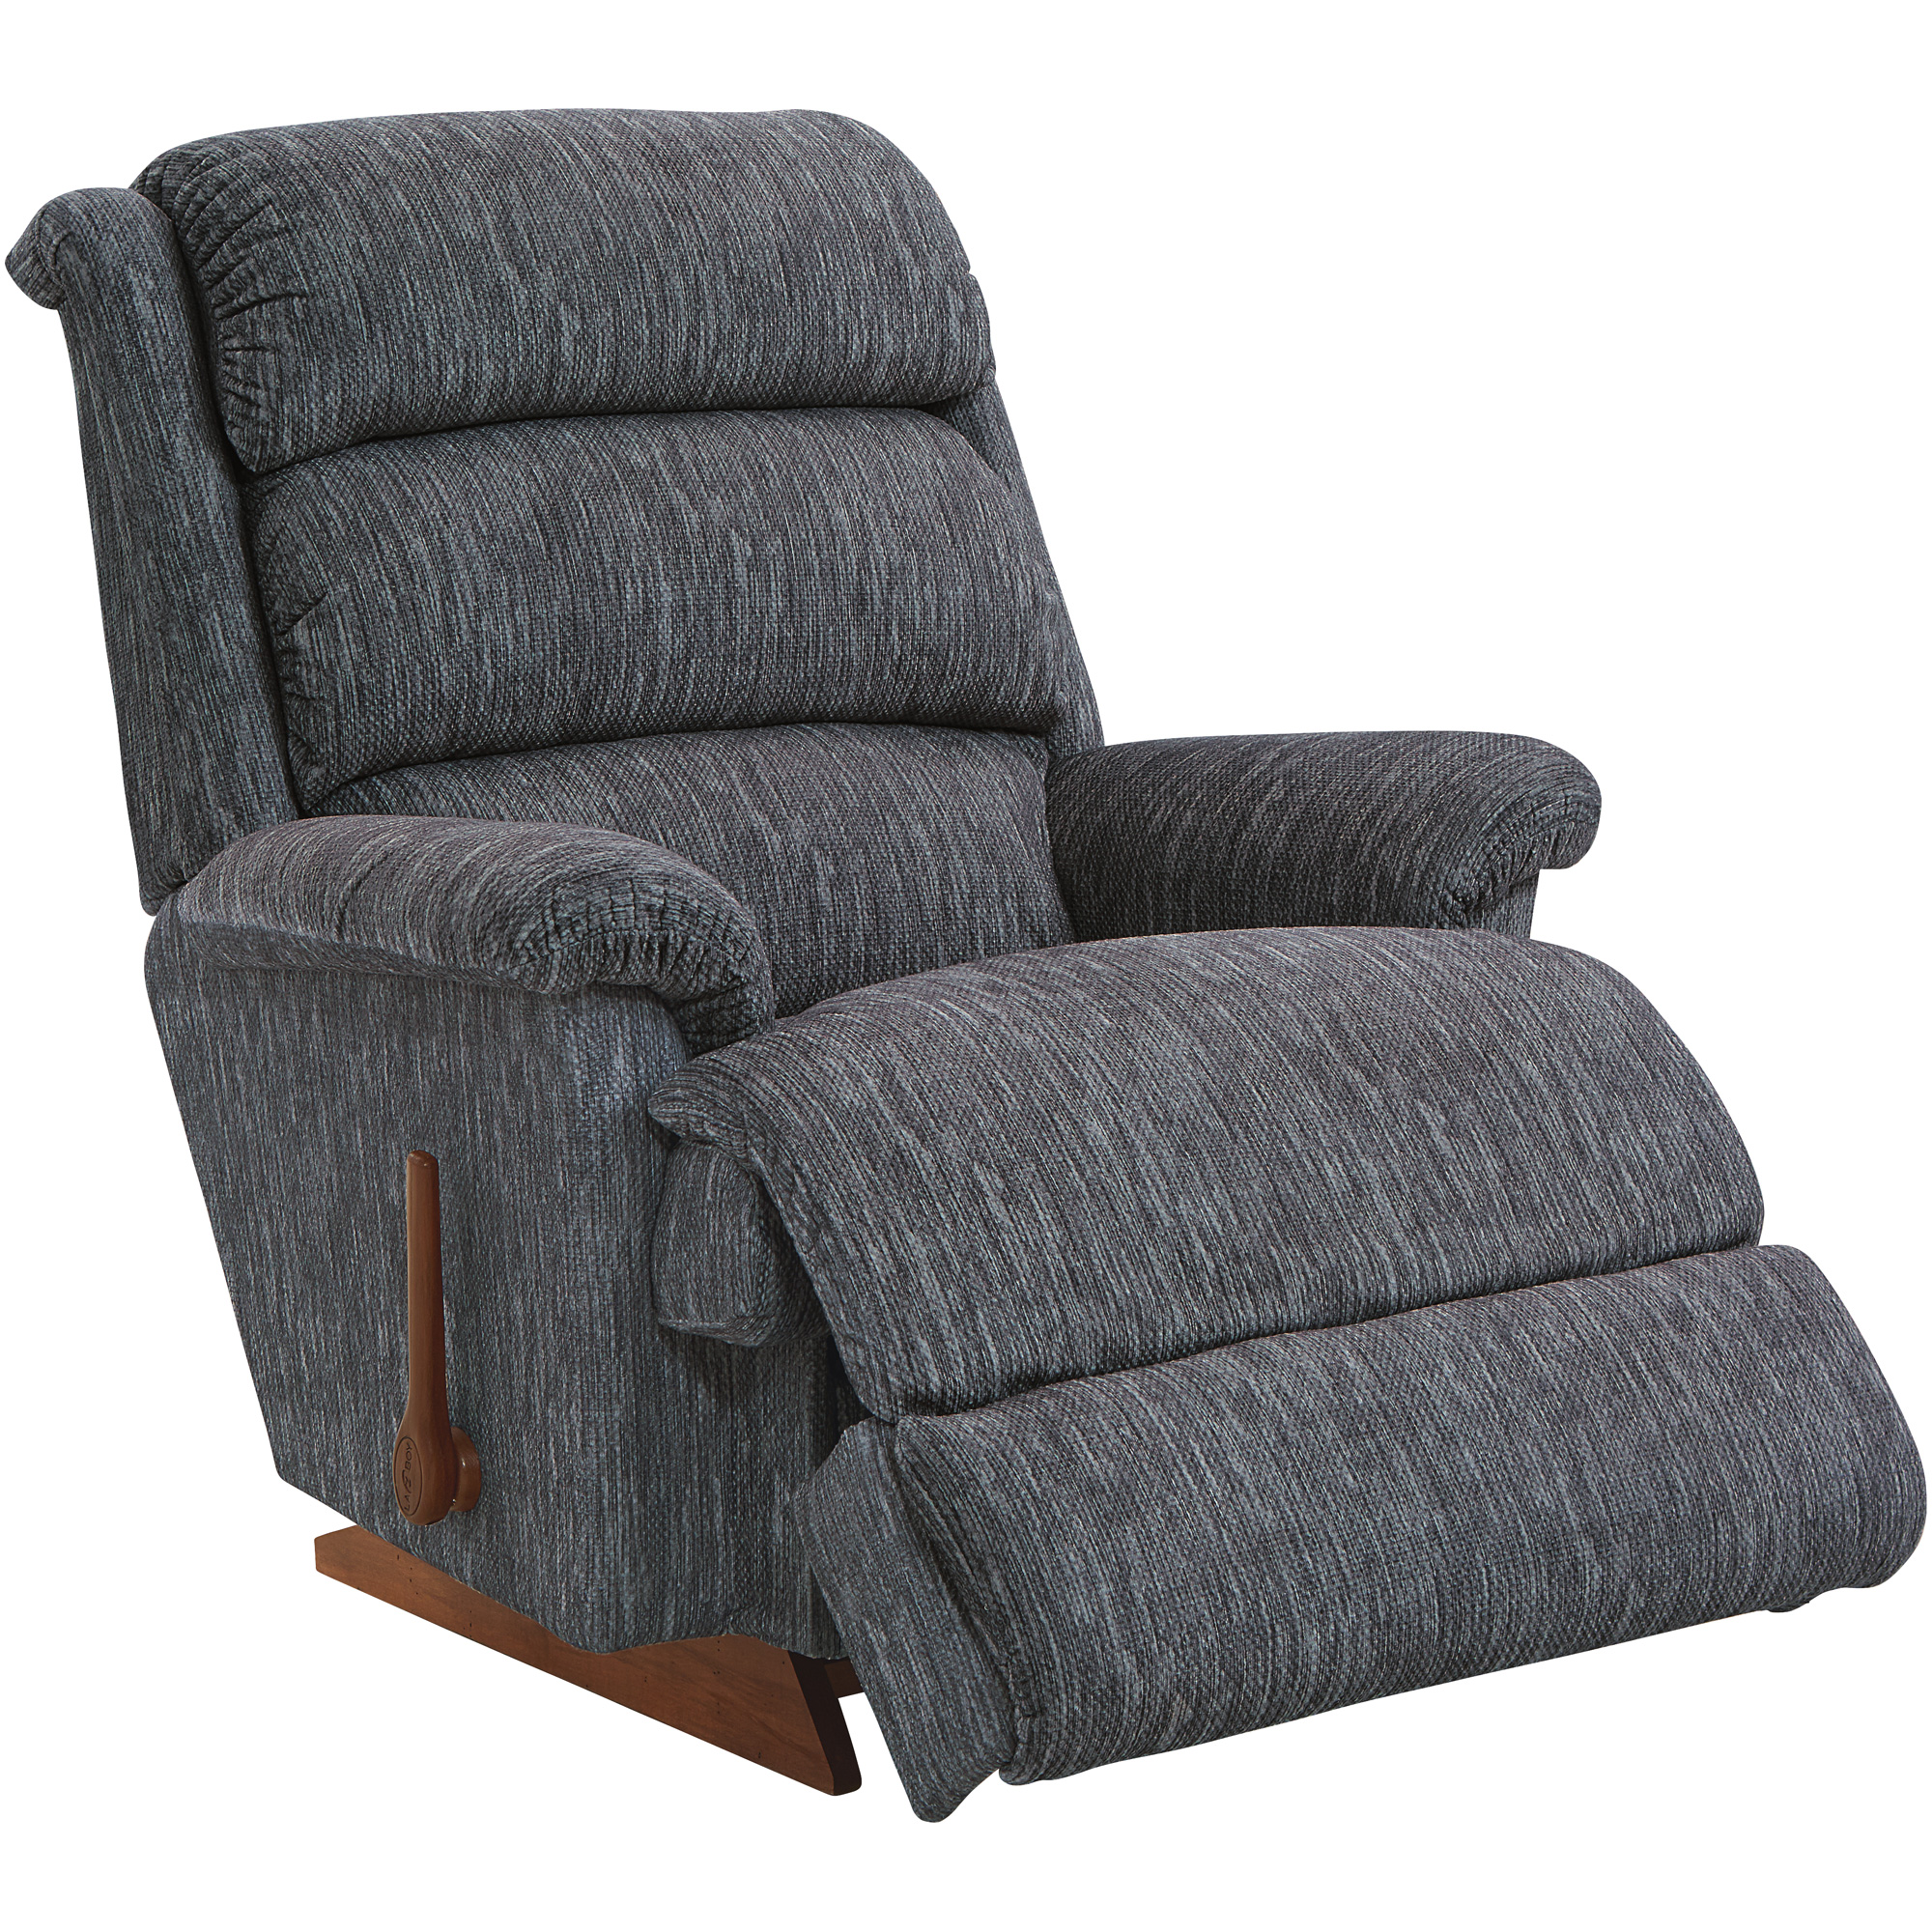 La-Z-Boy | Astor Storm Rocker Recliner Chair